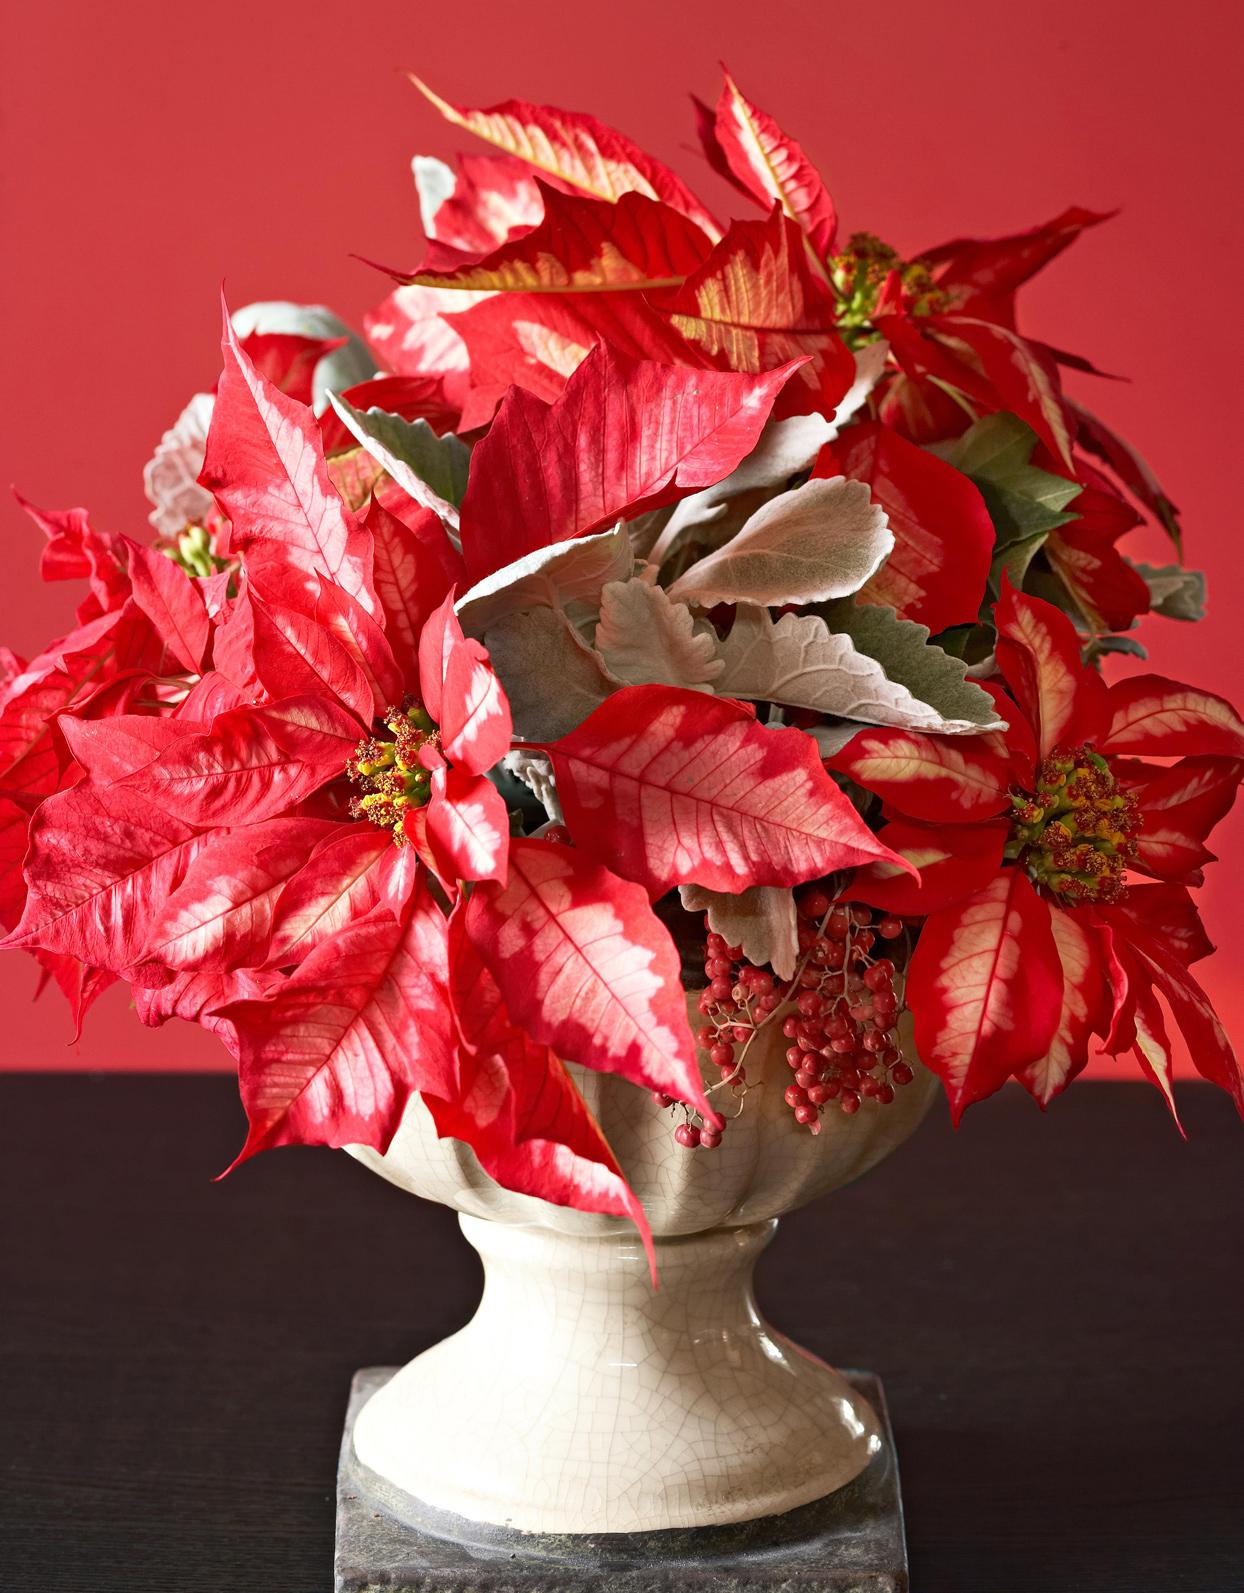 Red-and-silver poinsettia